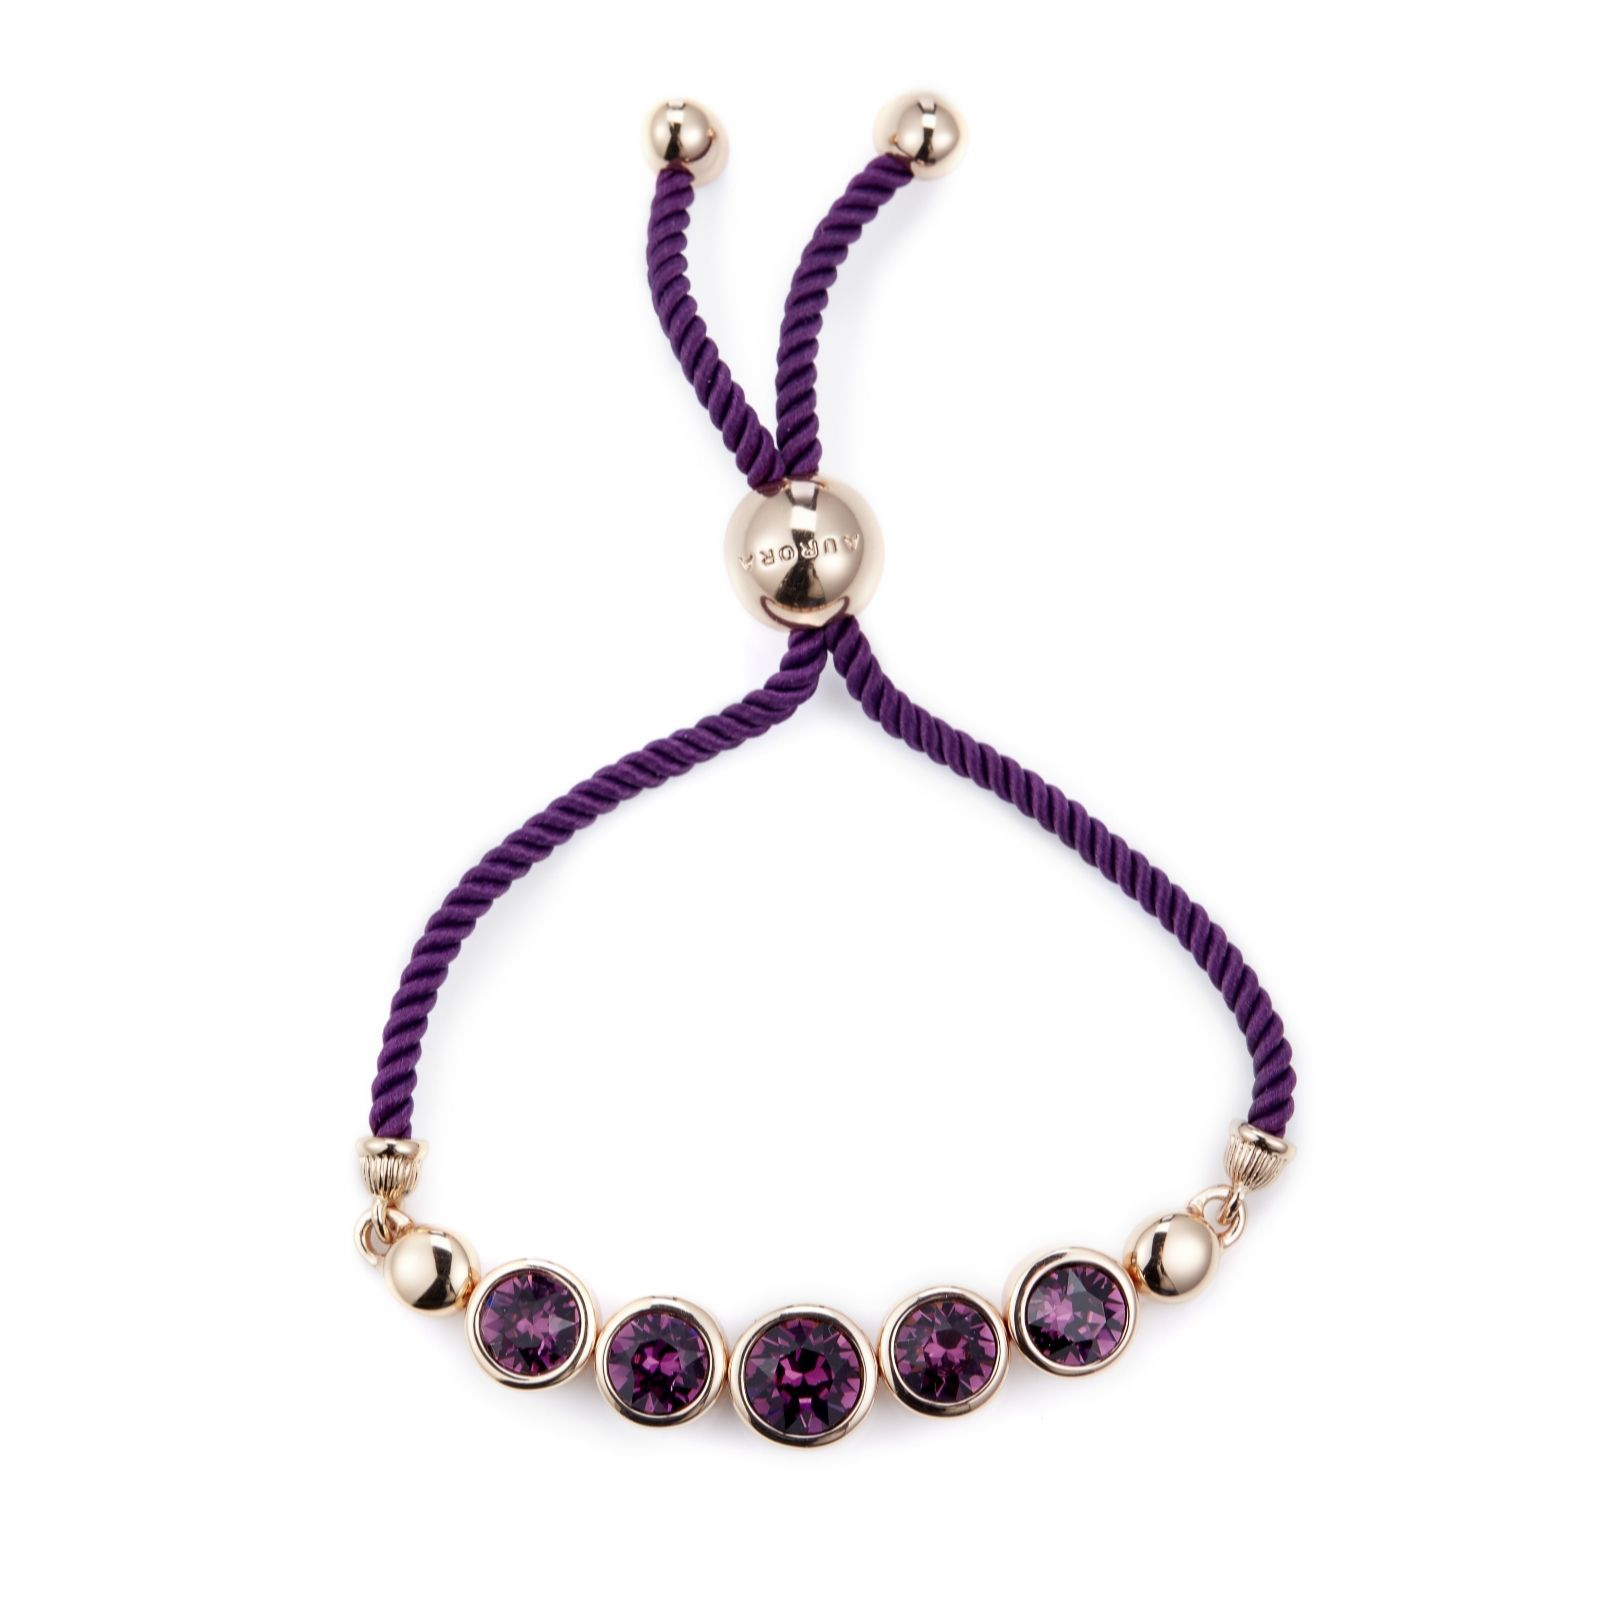 Aurora Swarovski Crystal Faceted Friendship Bracelet 302055